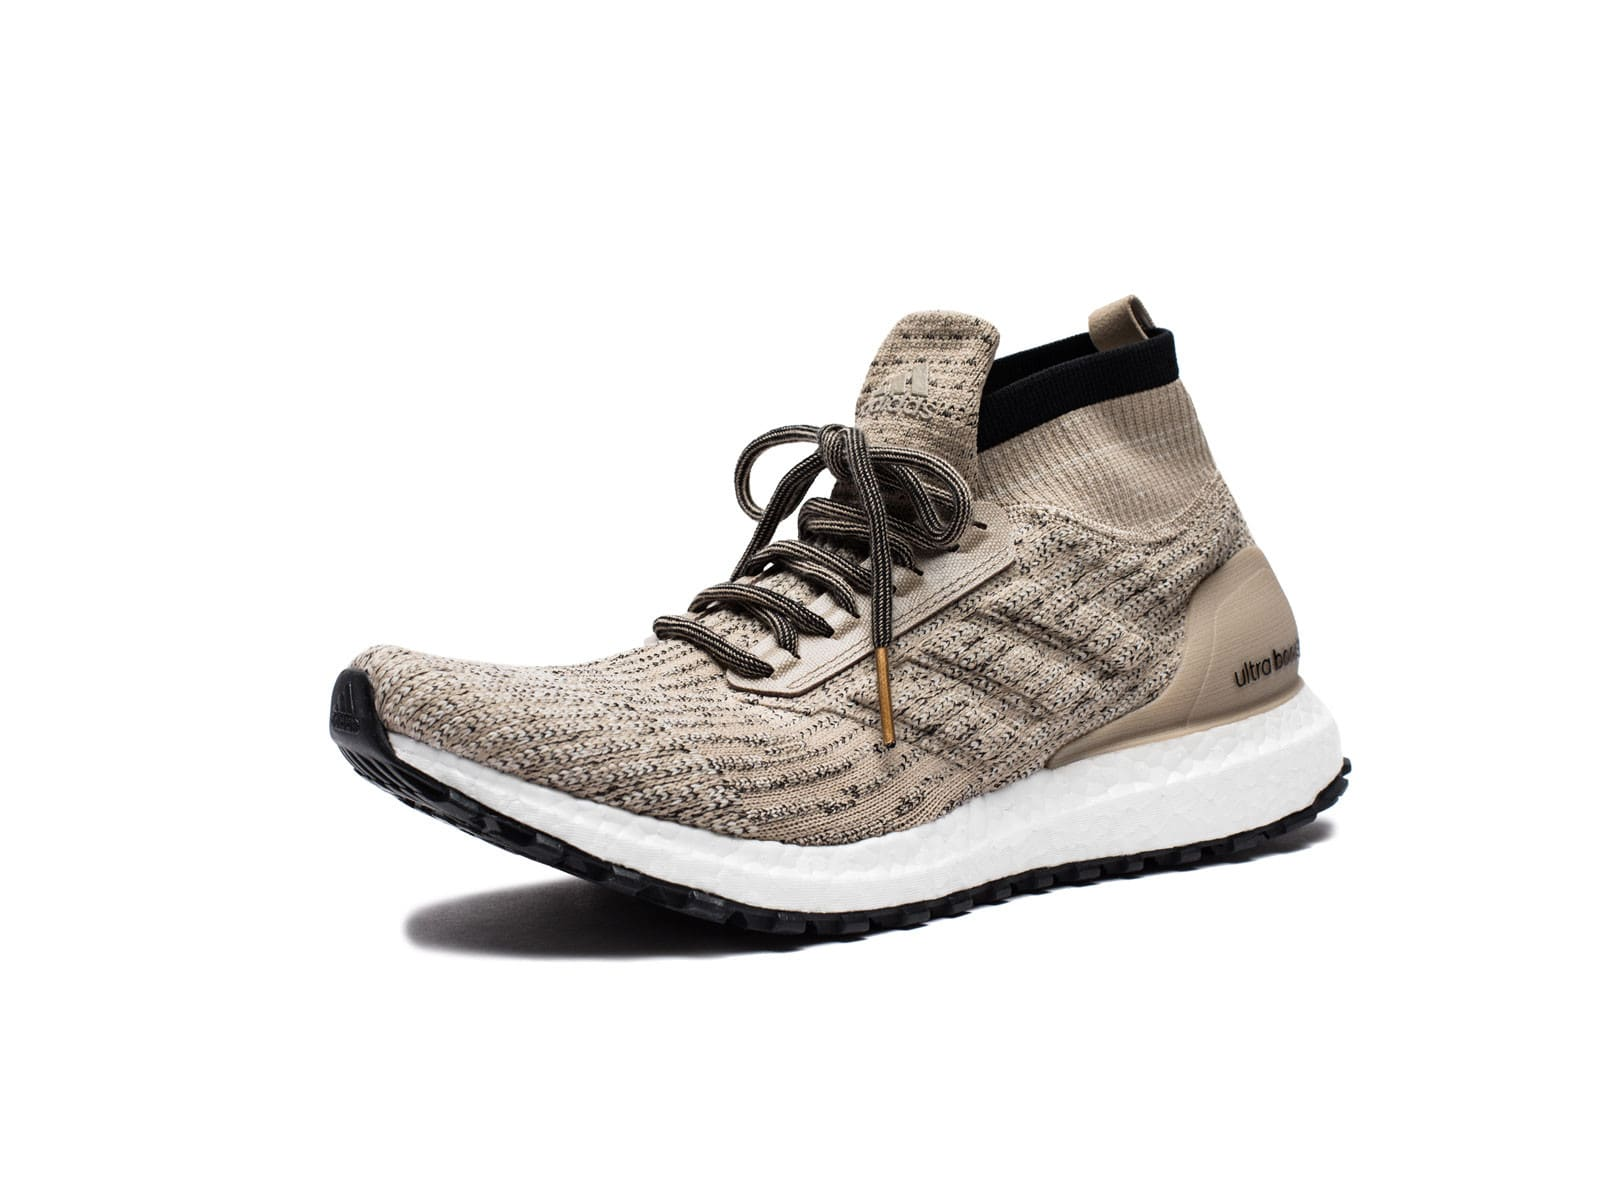 ULTRABOOST ALL TERRAIN LTD - TRAKHA/BROWN